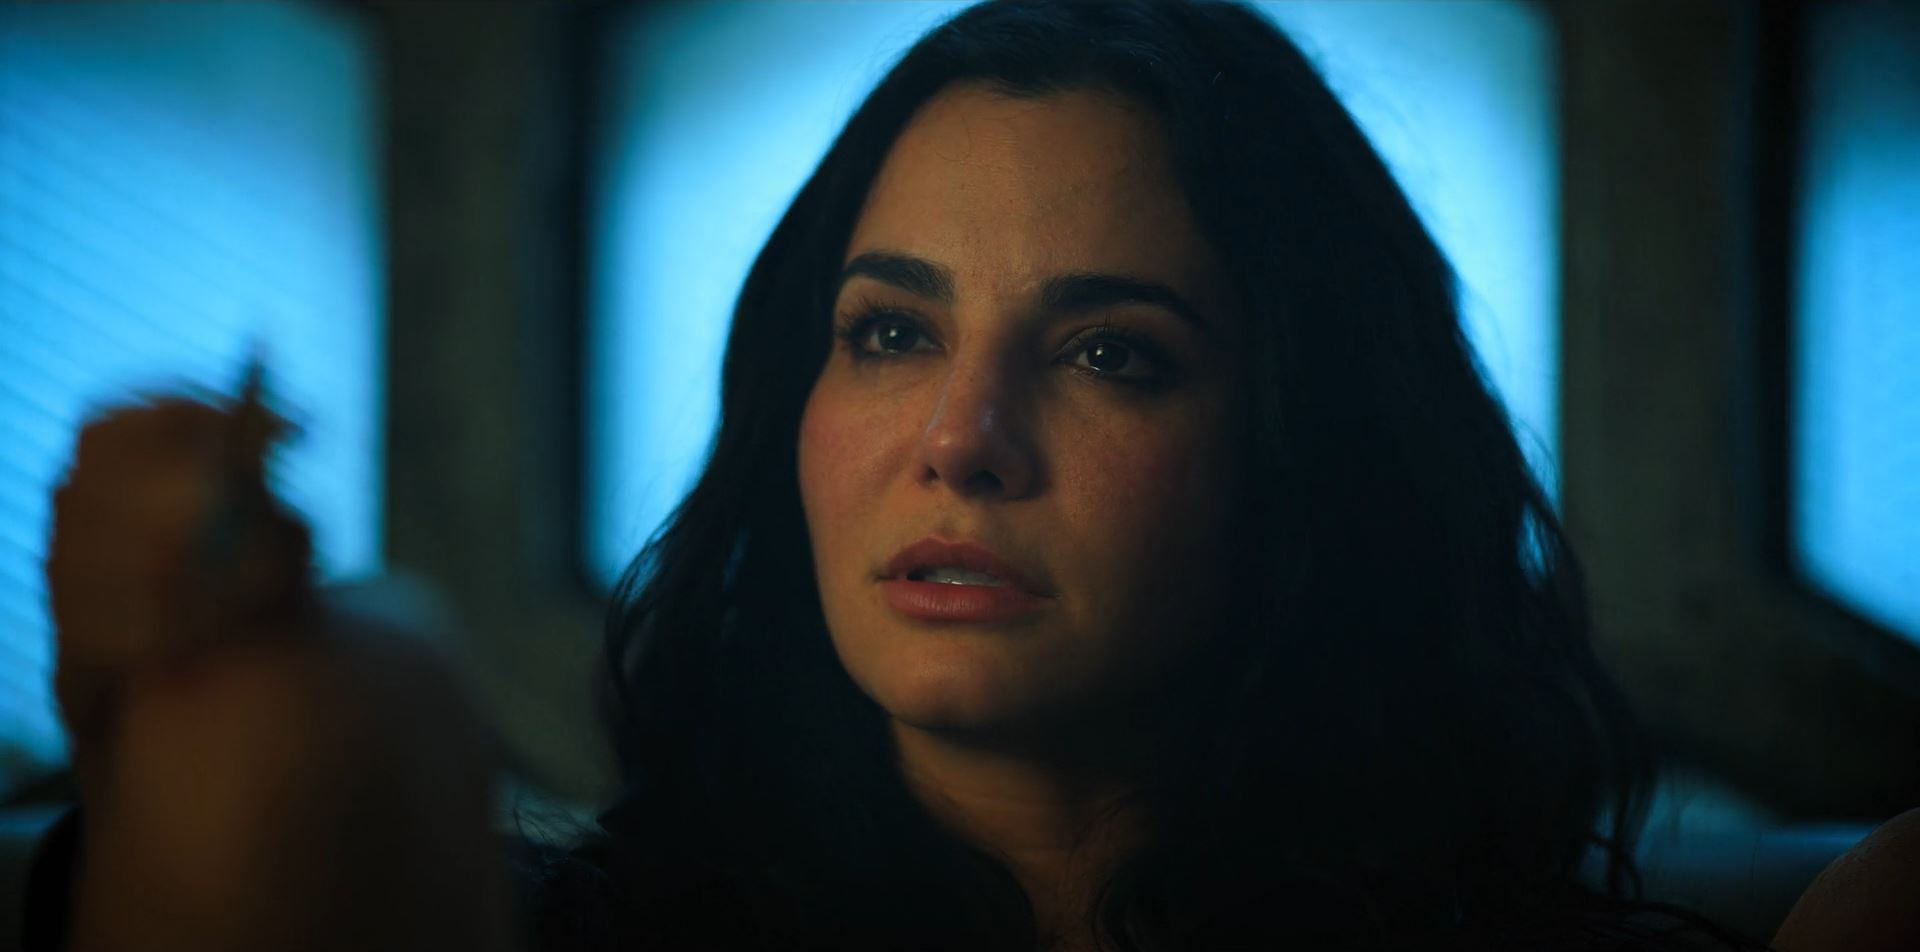 Altered Carbon - Martha Higareda as Kristin Ortega